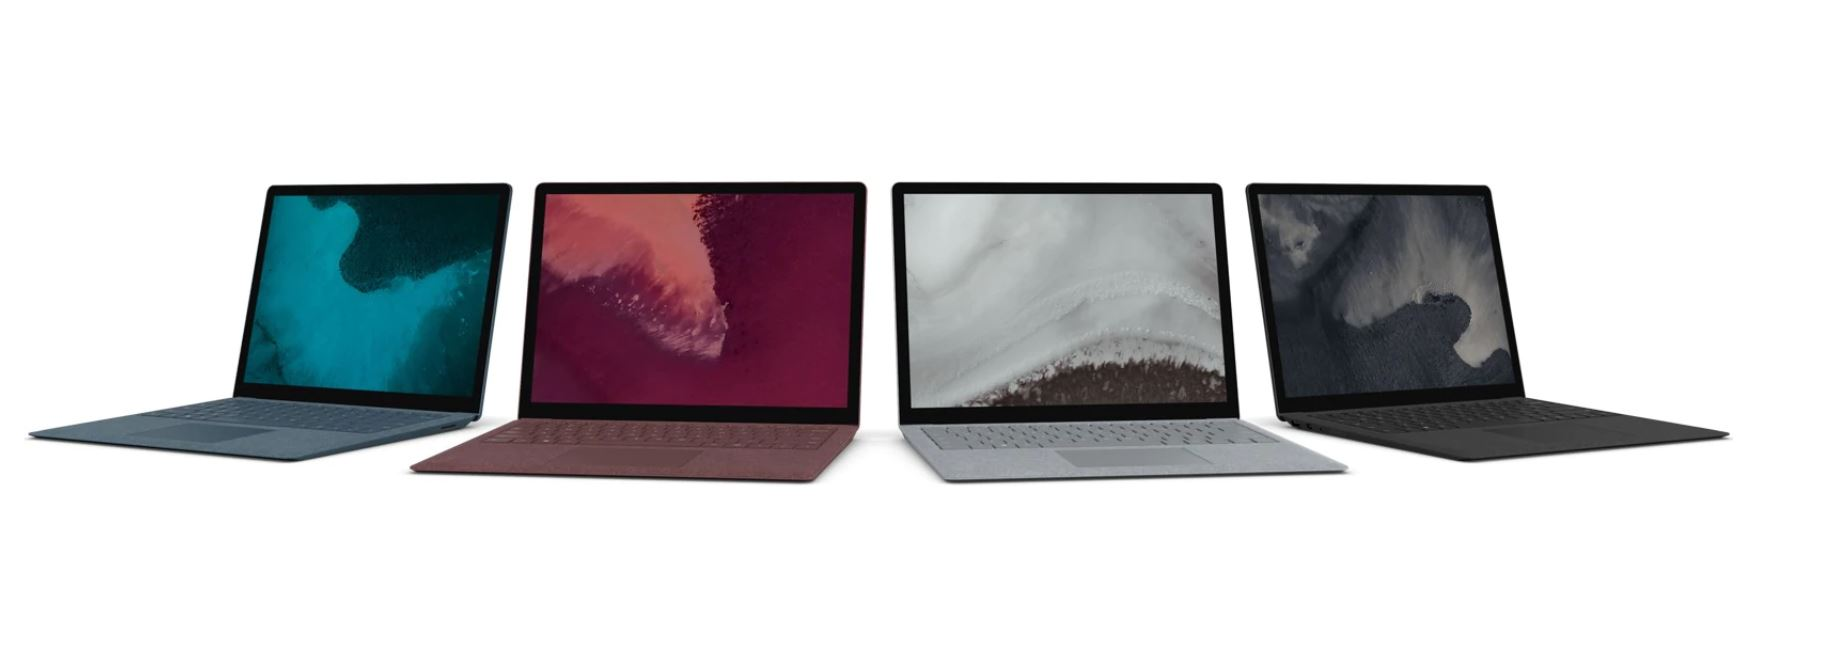 "Surface-Laptop-2-featured ""width ="" 1824 ""height ="" 658 ""srcset ="" https://www.funzen.net/wp-content/uploads/2019/08/1566655807_633_Microsoft39s-new-Surface-Pro-6-and-Surface-Laptop-2-are.jpg 1824w, https://elrincondechina.com/wp-content/uploads/2018/10/Surface-Laptop-2-featured-300x108.jpg 300w, https://elrincondechina.com/wp-content/uploads/2018/10/Surface -Laptop-2-featured-1024x369.jpg 1024w, https://elrincondechina.com/wp-content/uploads/2018/10/Surface-Laptop-2-featured-600x216.jpg 600w, https://elrincondechina.com /wp-content/uploads/2018/10/Surface-Laptop-2-featured-280x101.jpg 280w ""sizes ="" (max-width: 1824px) 100vw, 1824px ""/></p><div class='code-block code-block-9' style='margin: 8px auto; text-align: center; display: block; clear: both;'> <div data-ad="